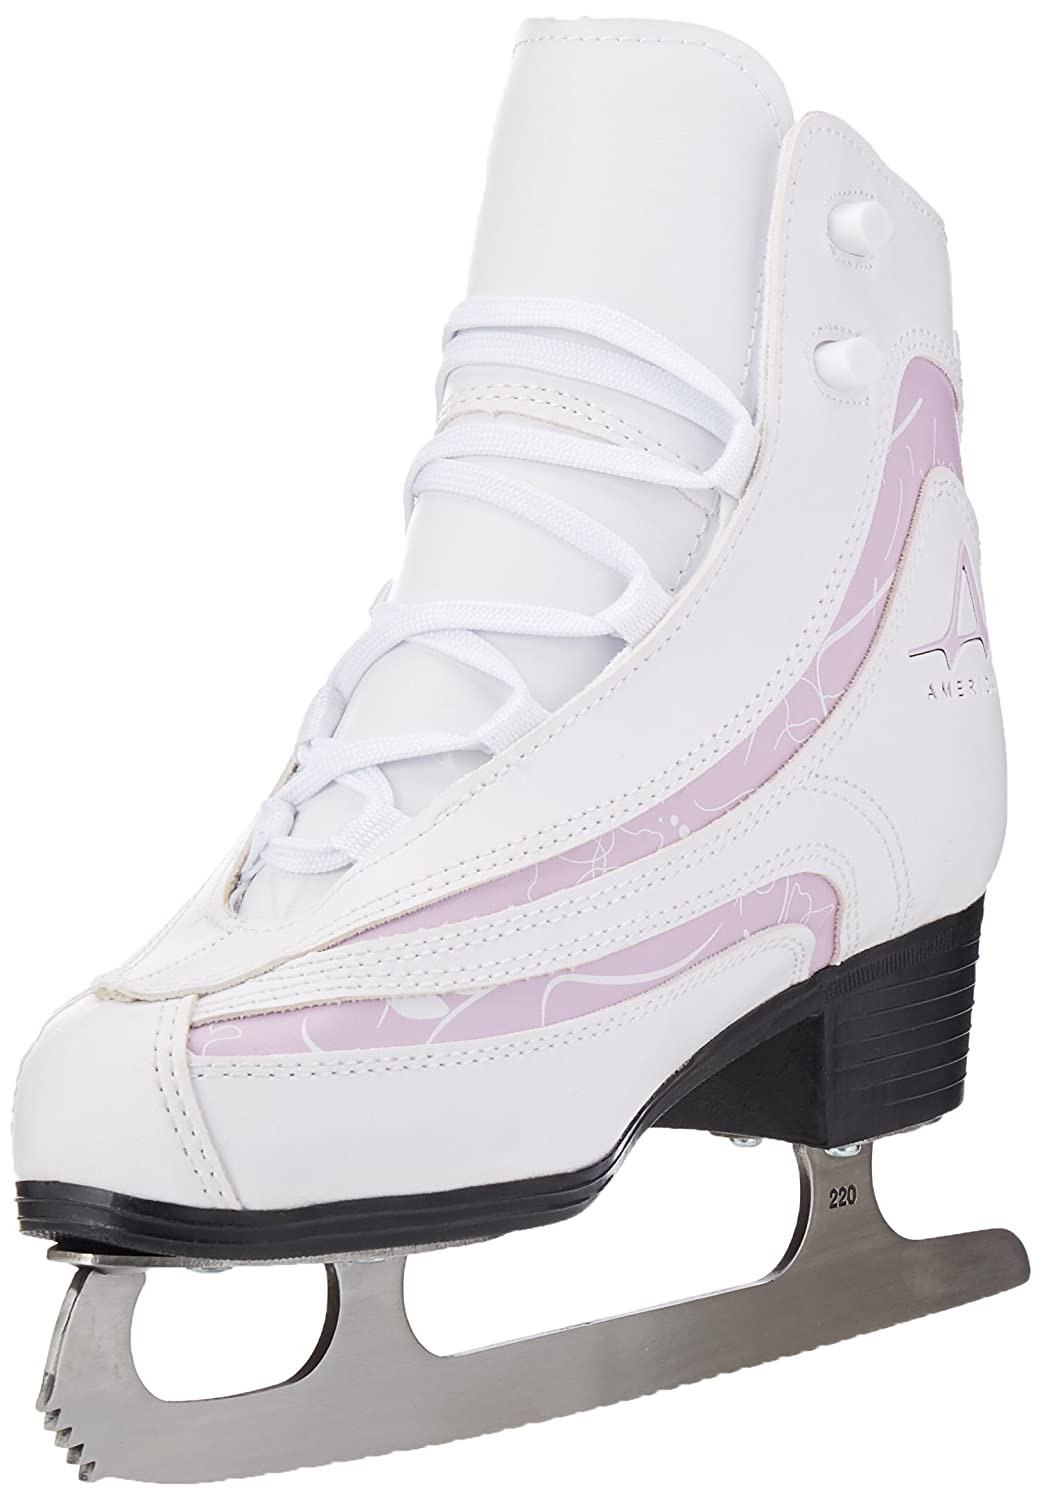 American Athletic Shoe Women's Soft Boot Figure Skates American Athletic Shoe Co.